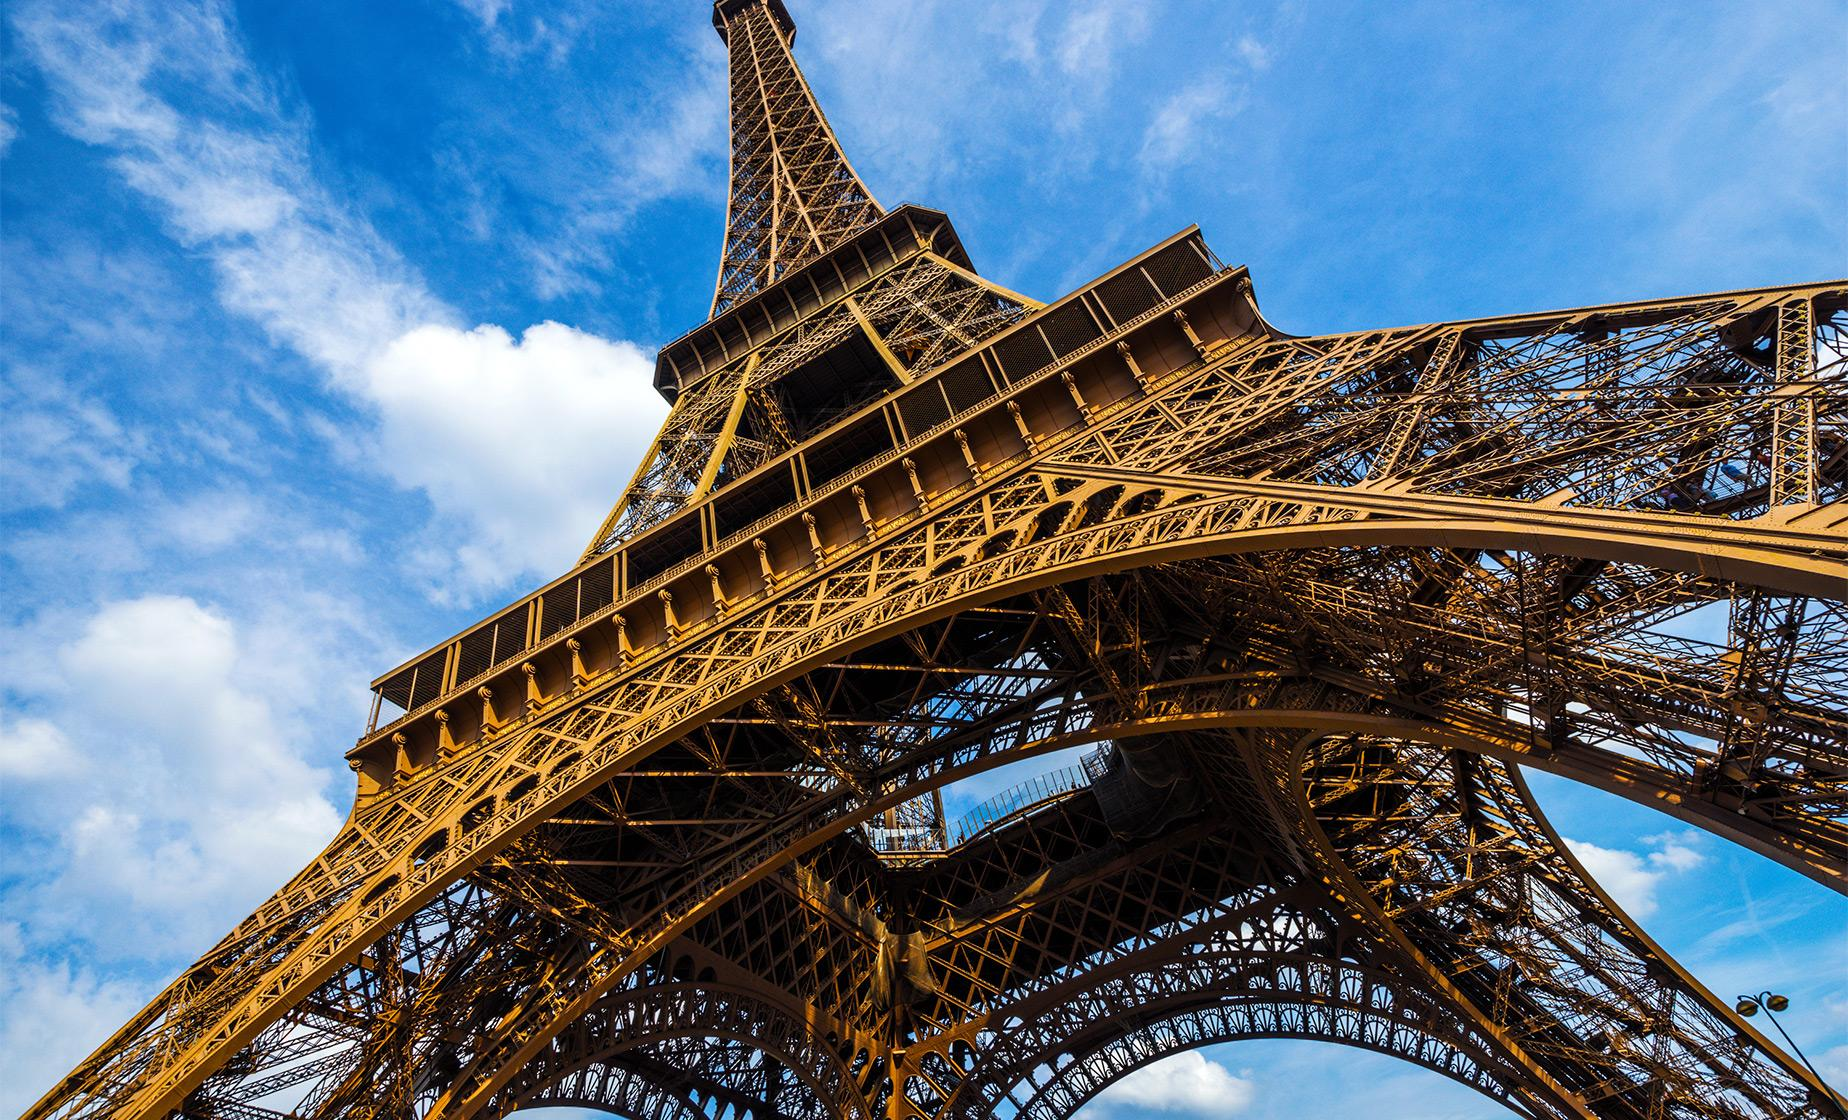 Skip-the-Line Eiffel Tower, City Highlights and Scenic Seine Cruise